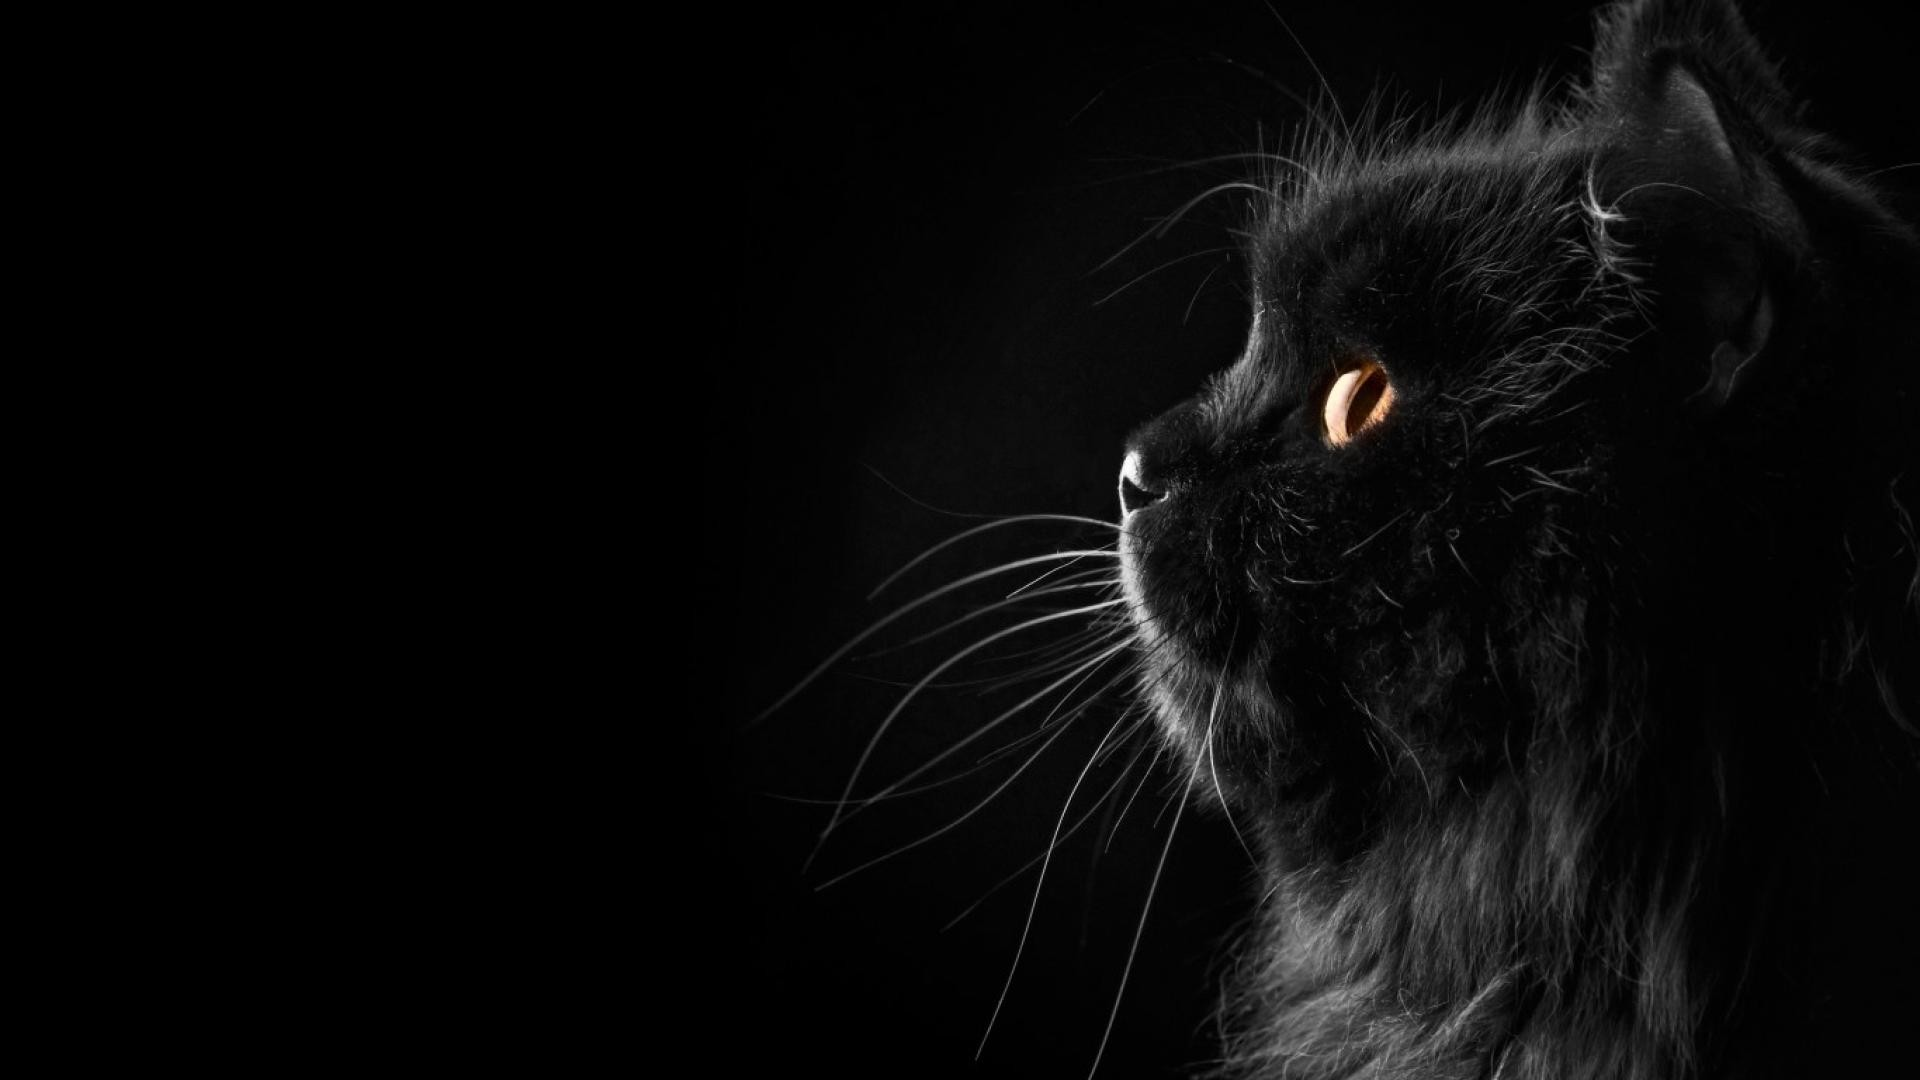 Wallpaper black cat wallpapertag - Cool backgrounds of cats ...